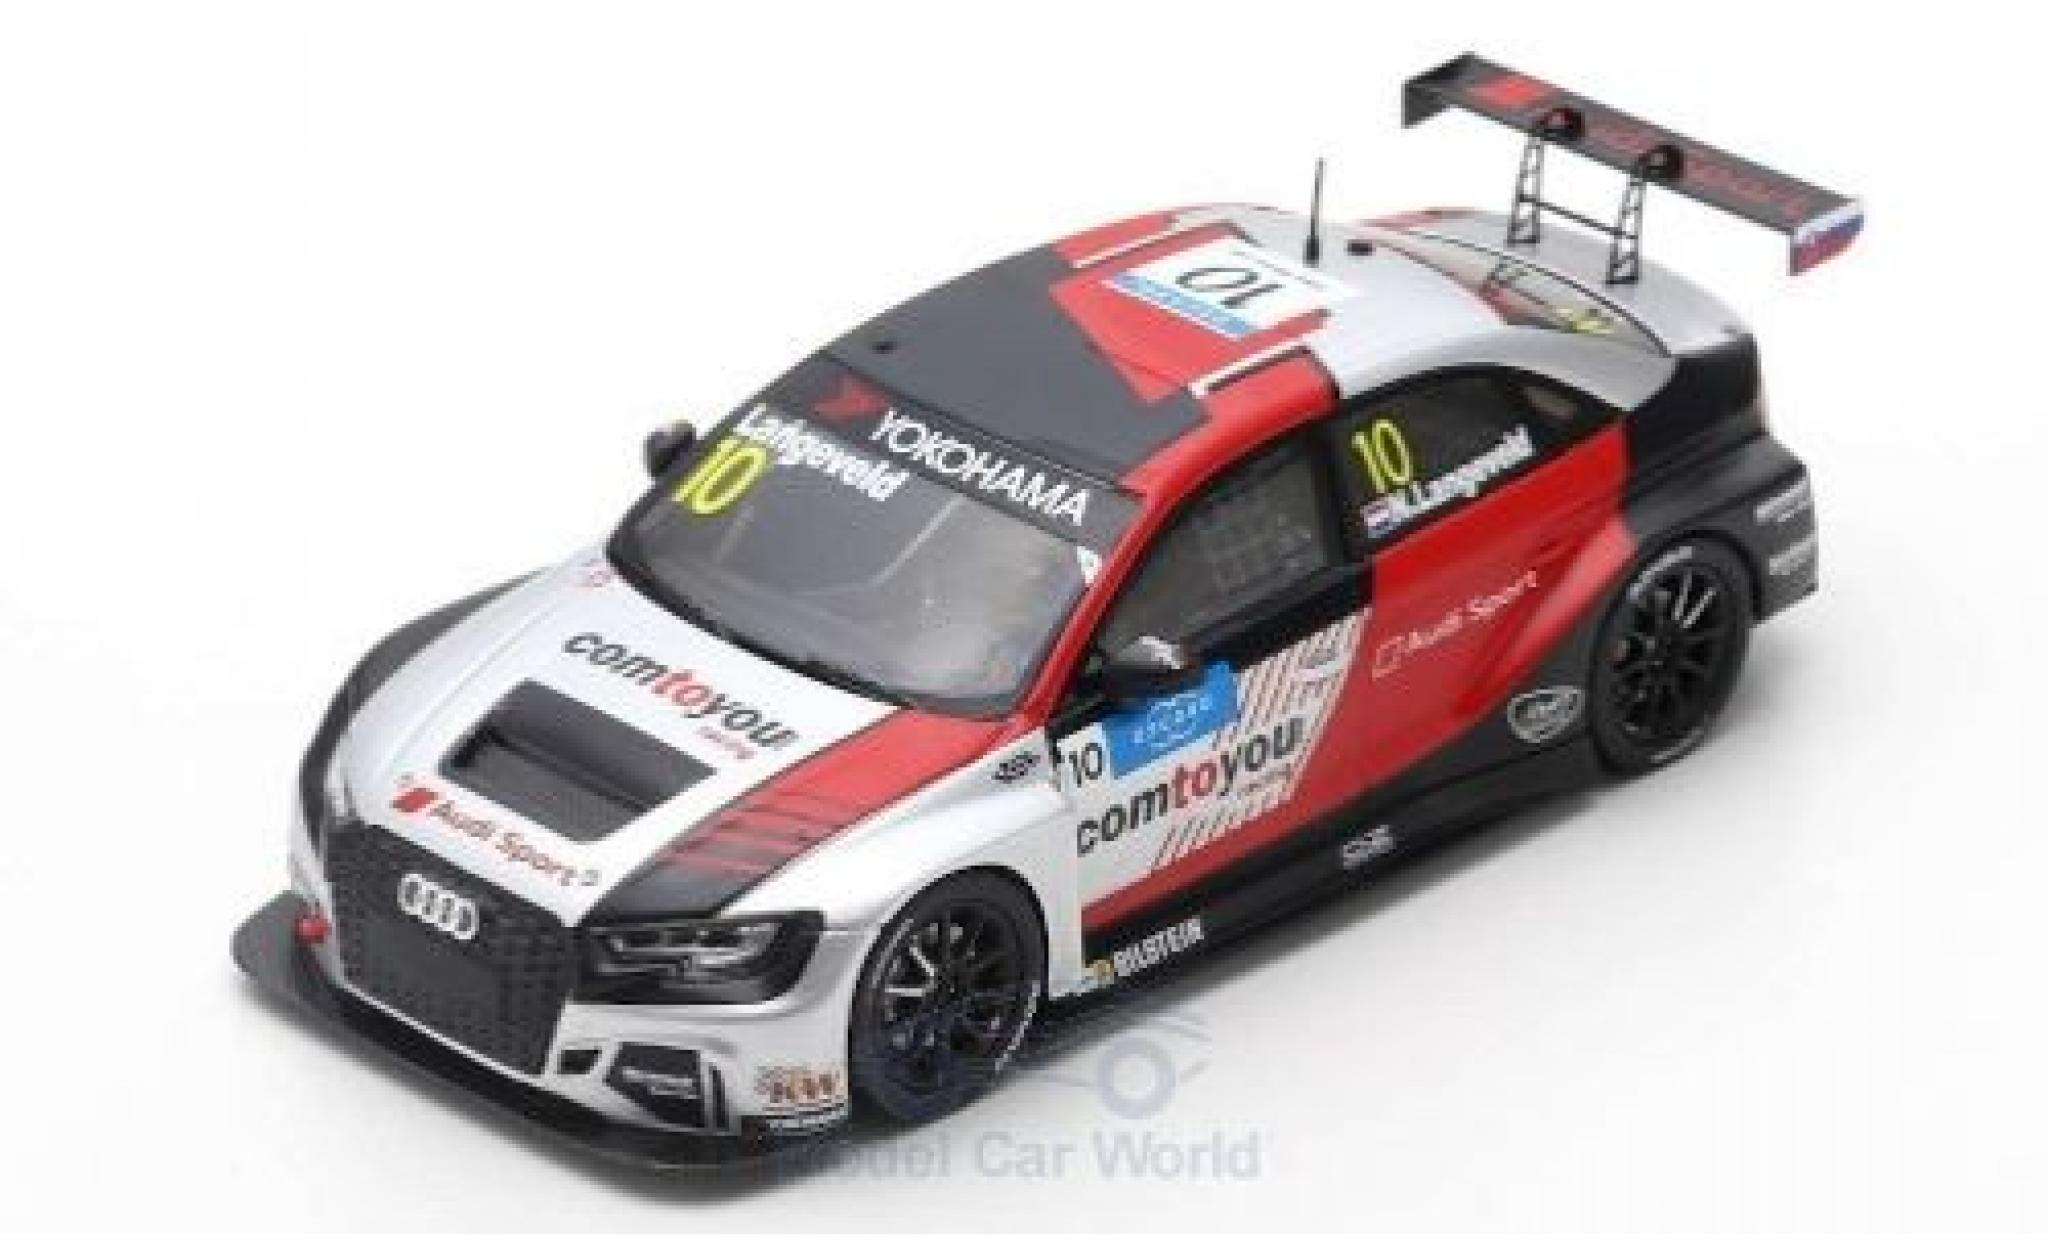 Audi RS3 1/43 Spark LMS No.10 comtoyou Team Sport WTCR Slovakia Ring 2019 N.Langeveld